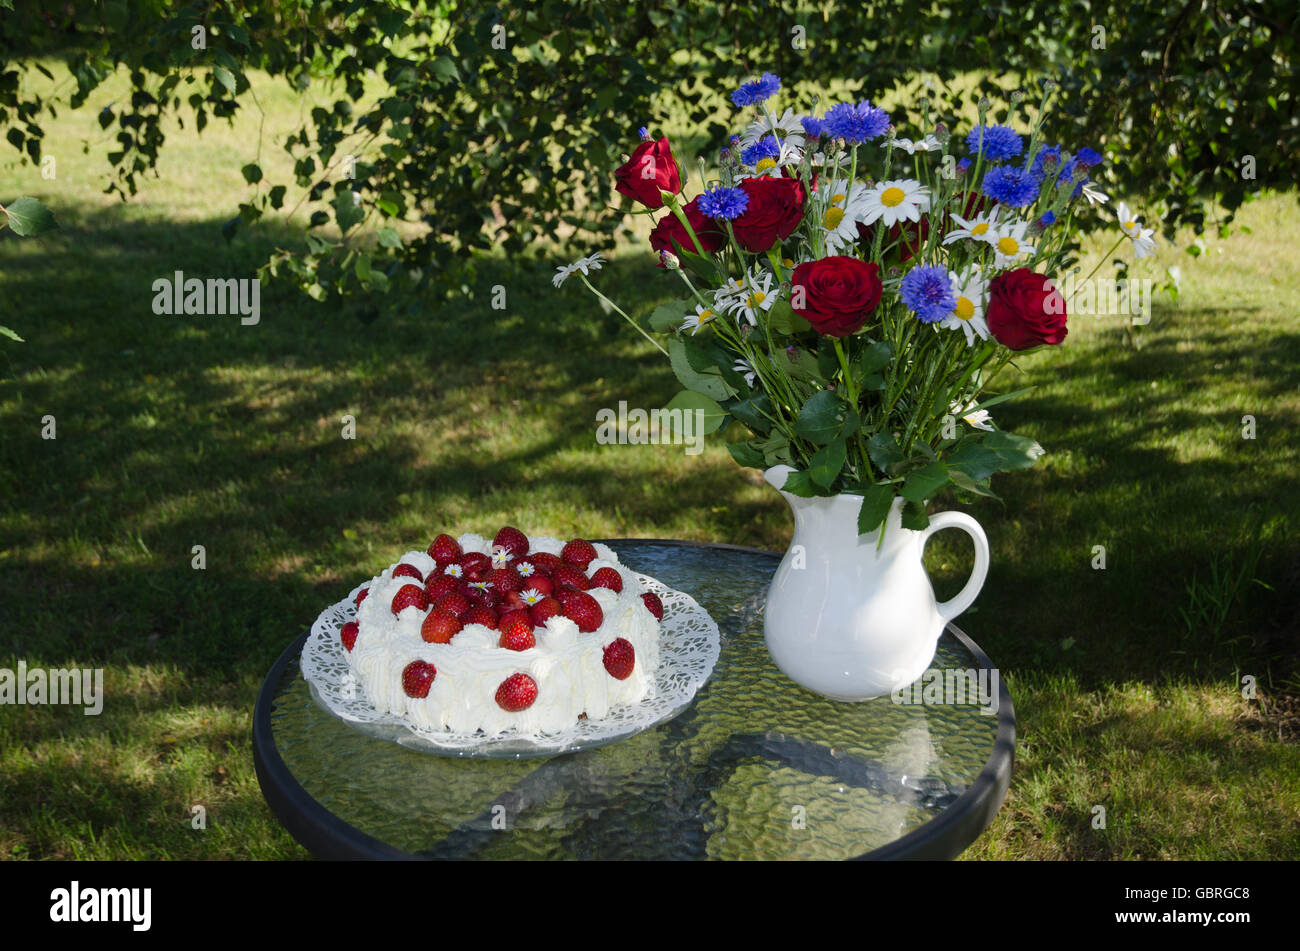 Strawberry cake an a bouquet of summer flowers on a table in a ...